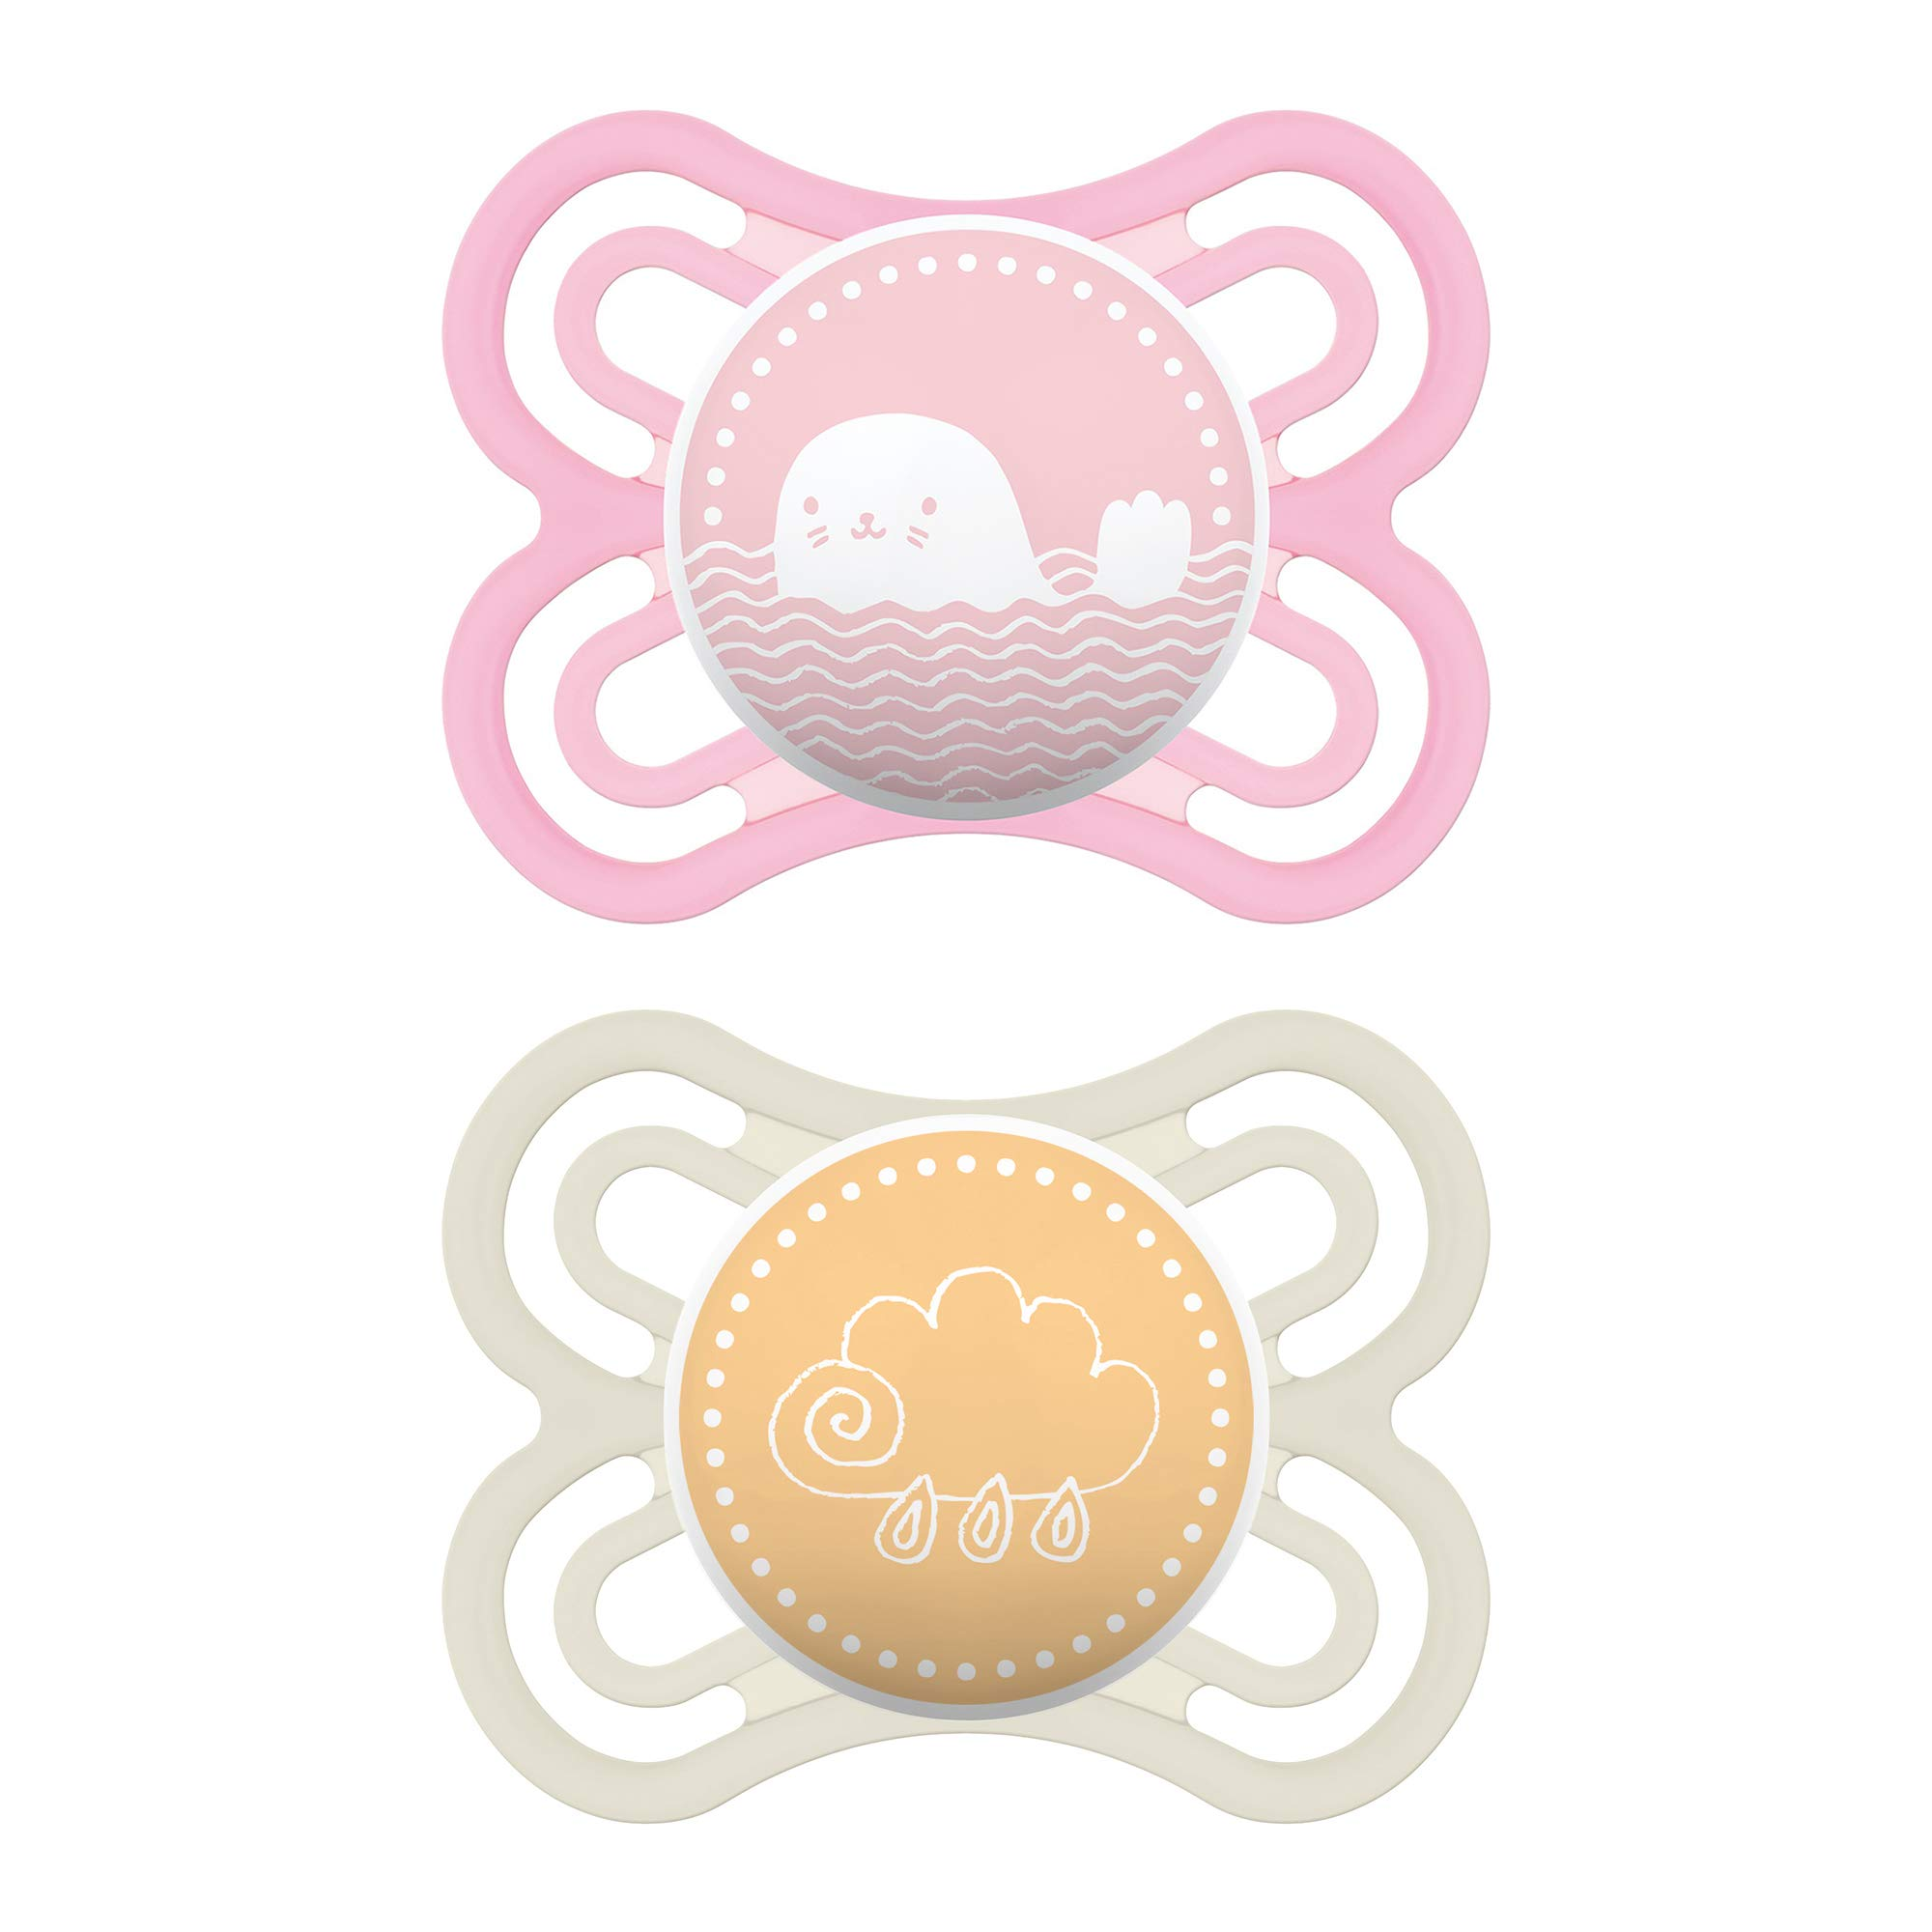 MAM Perfect Pacifiers, Baby Pacifiers 0-6 Months (2 pack), Best Pacifier for Breastfed Babies, Orthodontic Pacifier, Baby Girl Pacifier